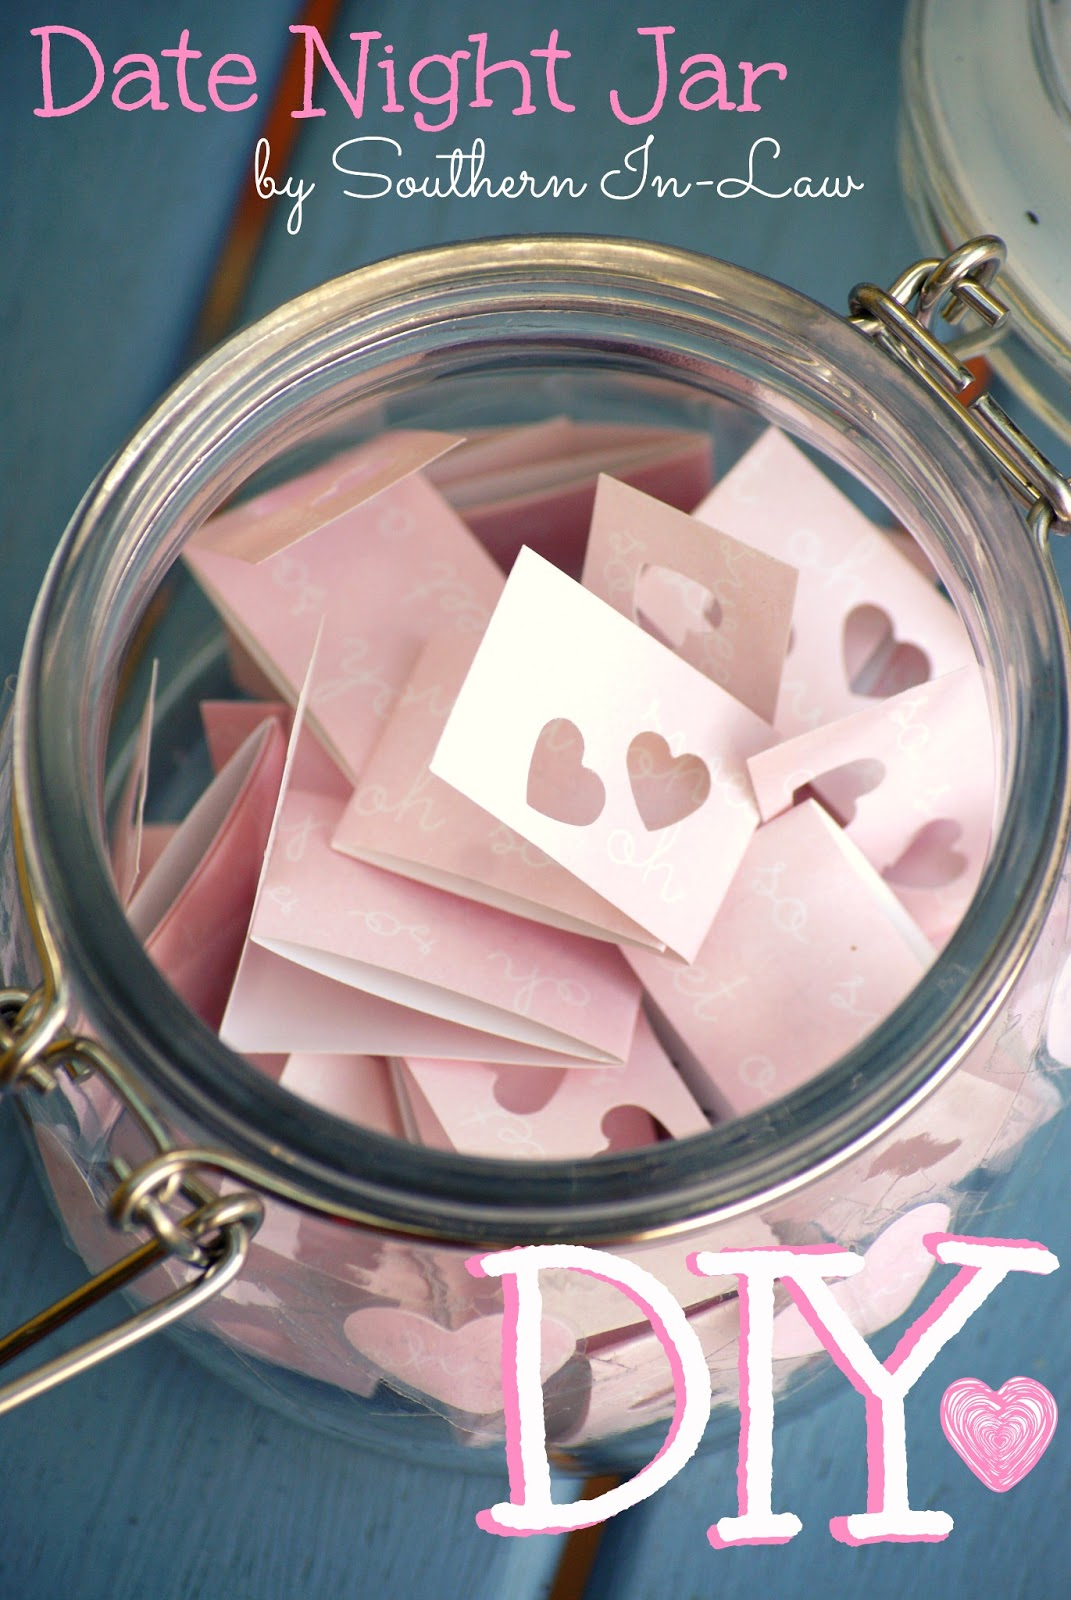 A Year Of Date Nights Wedding Gift : Southern In Law: Valentines DIY Gifts: Date Night Jar